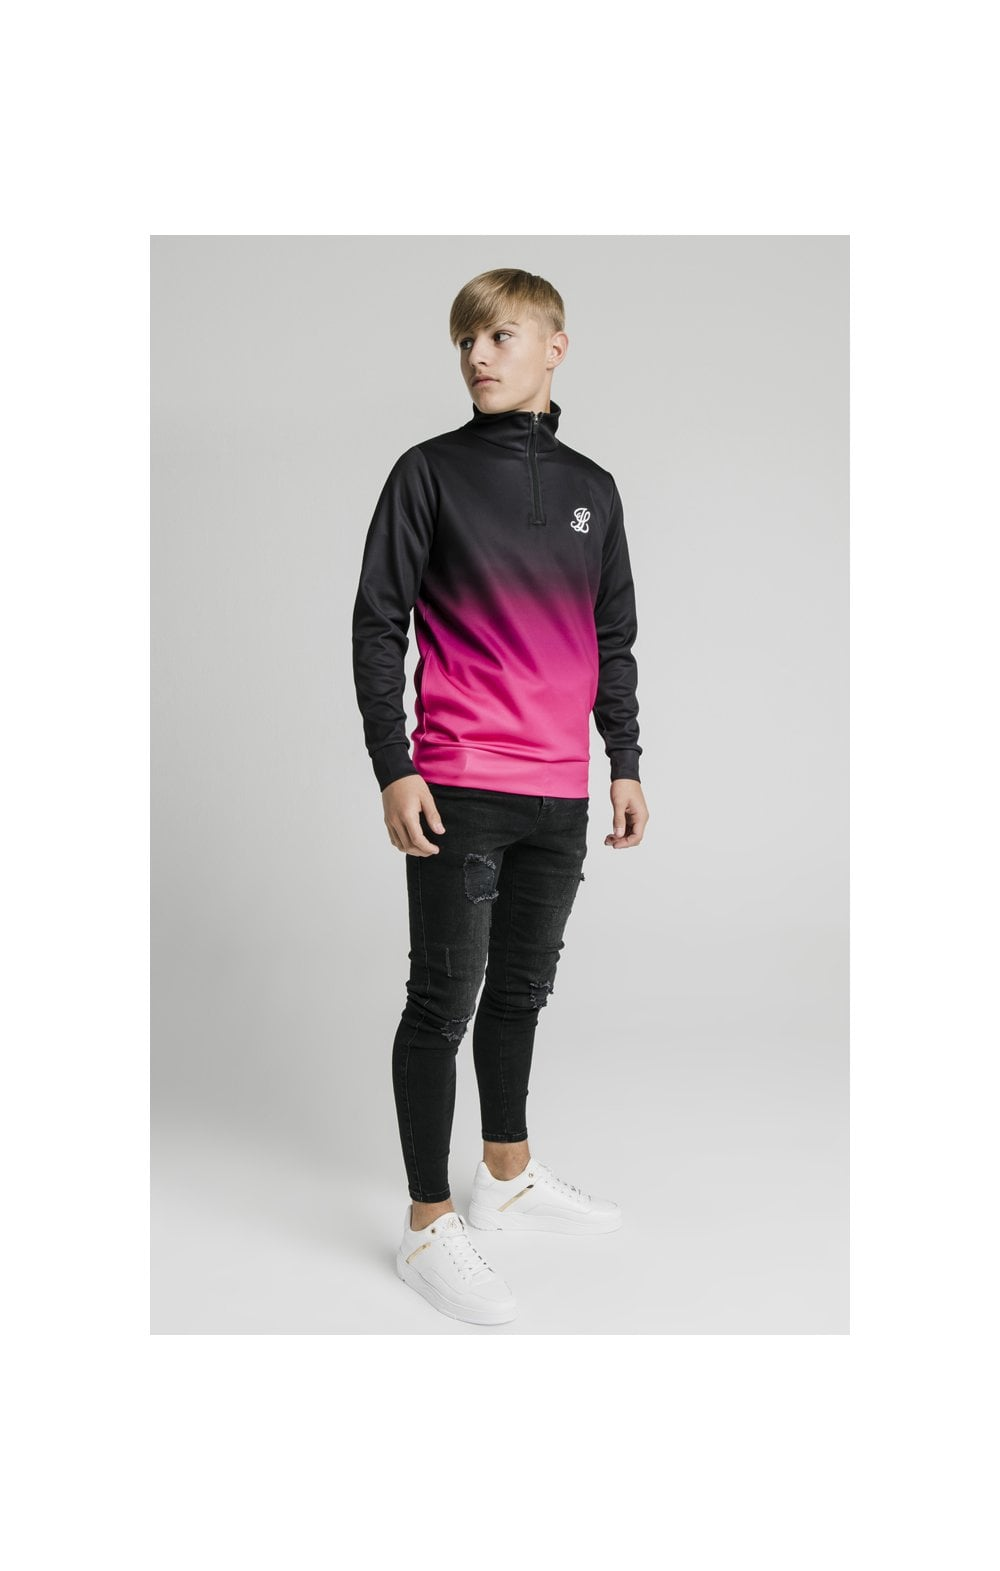 Illusive London Funnel Neck 1/4 Zip Hoodie - Black & Pink (4)